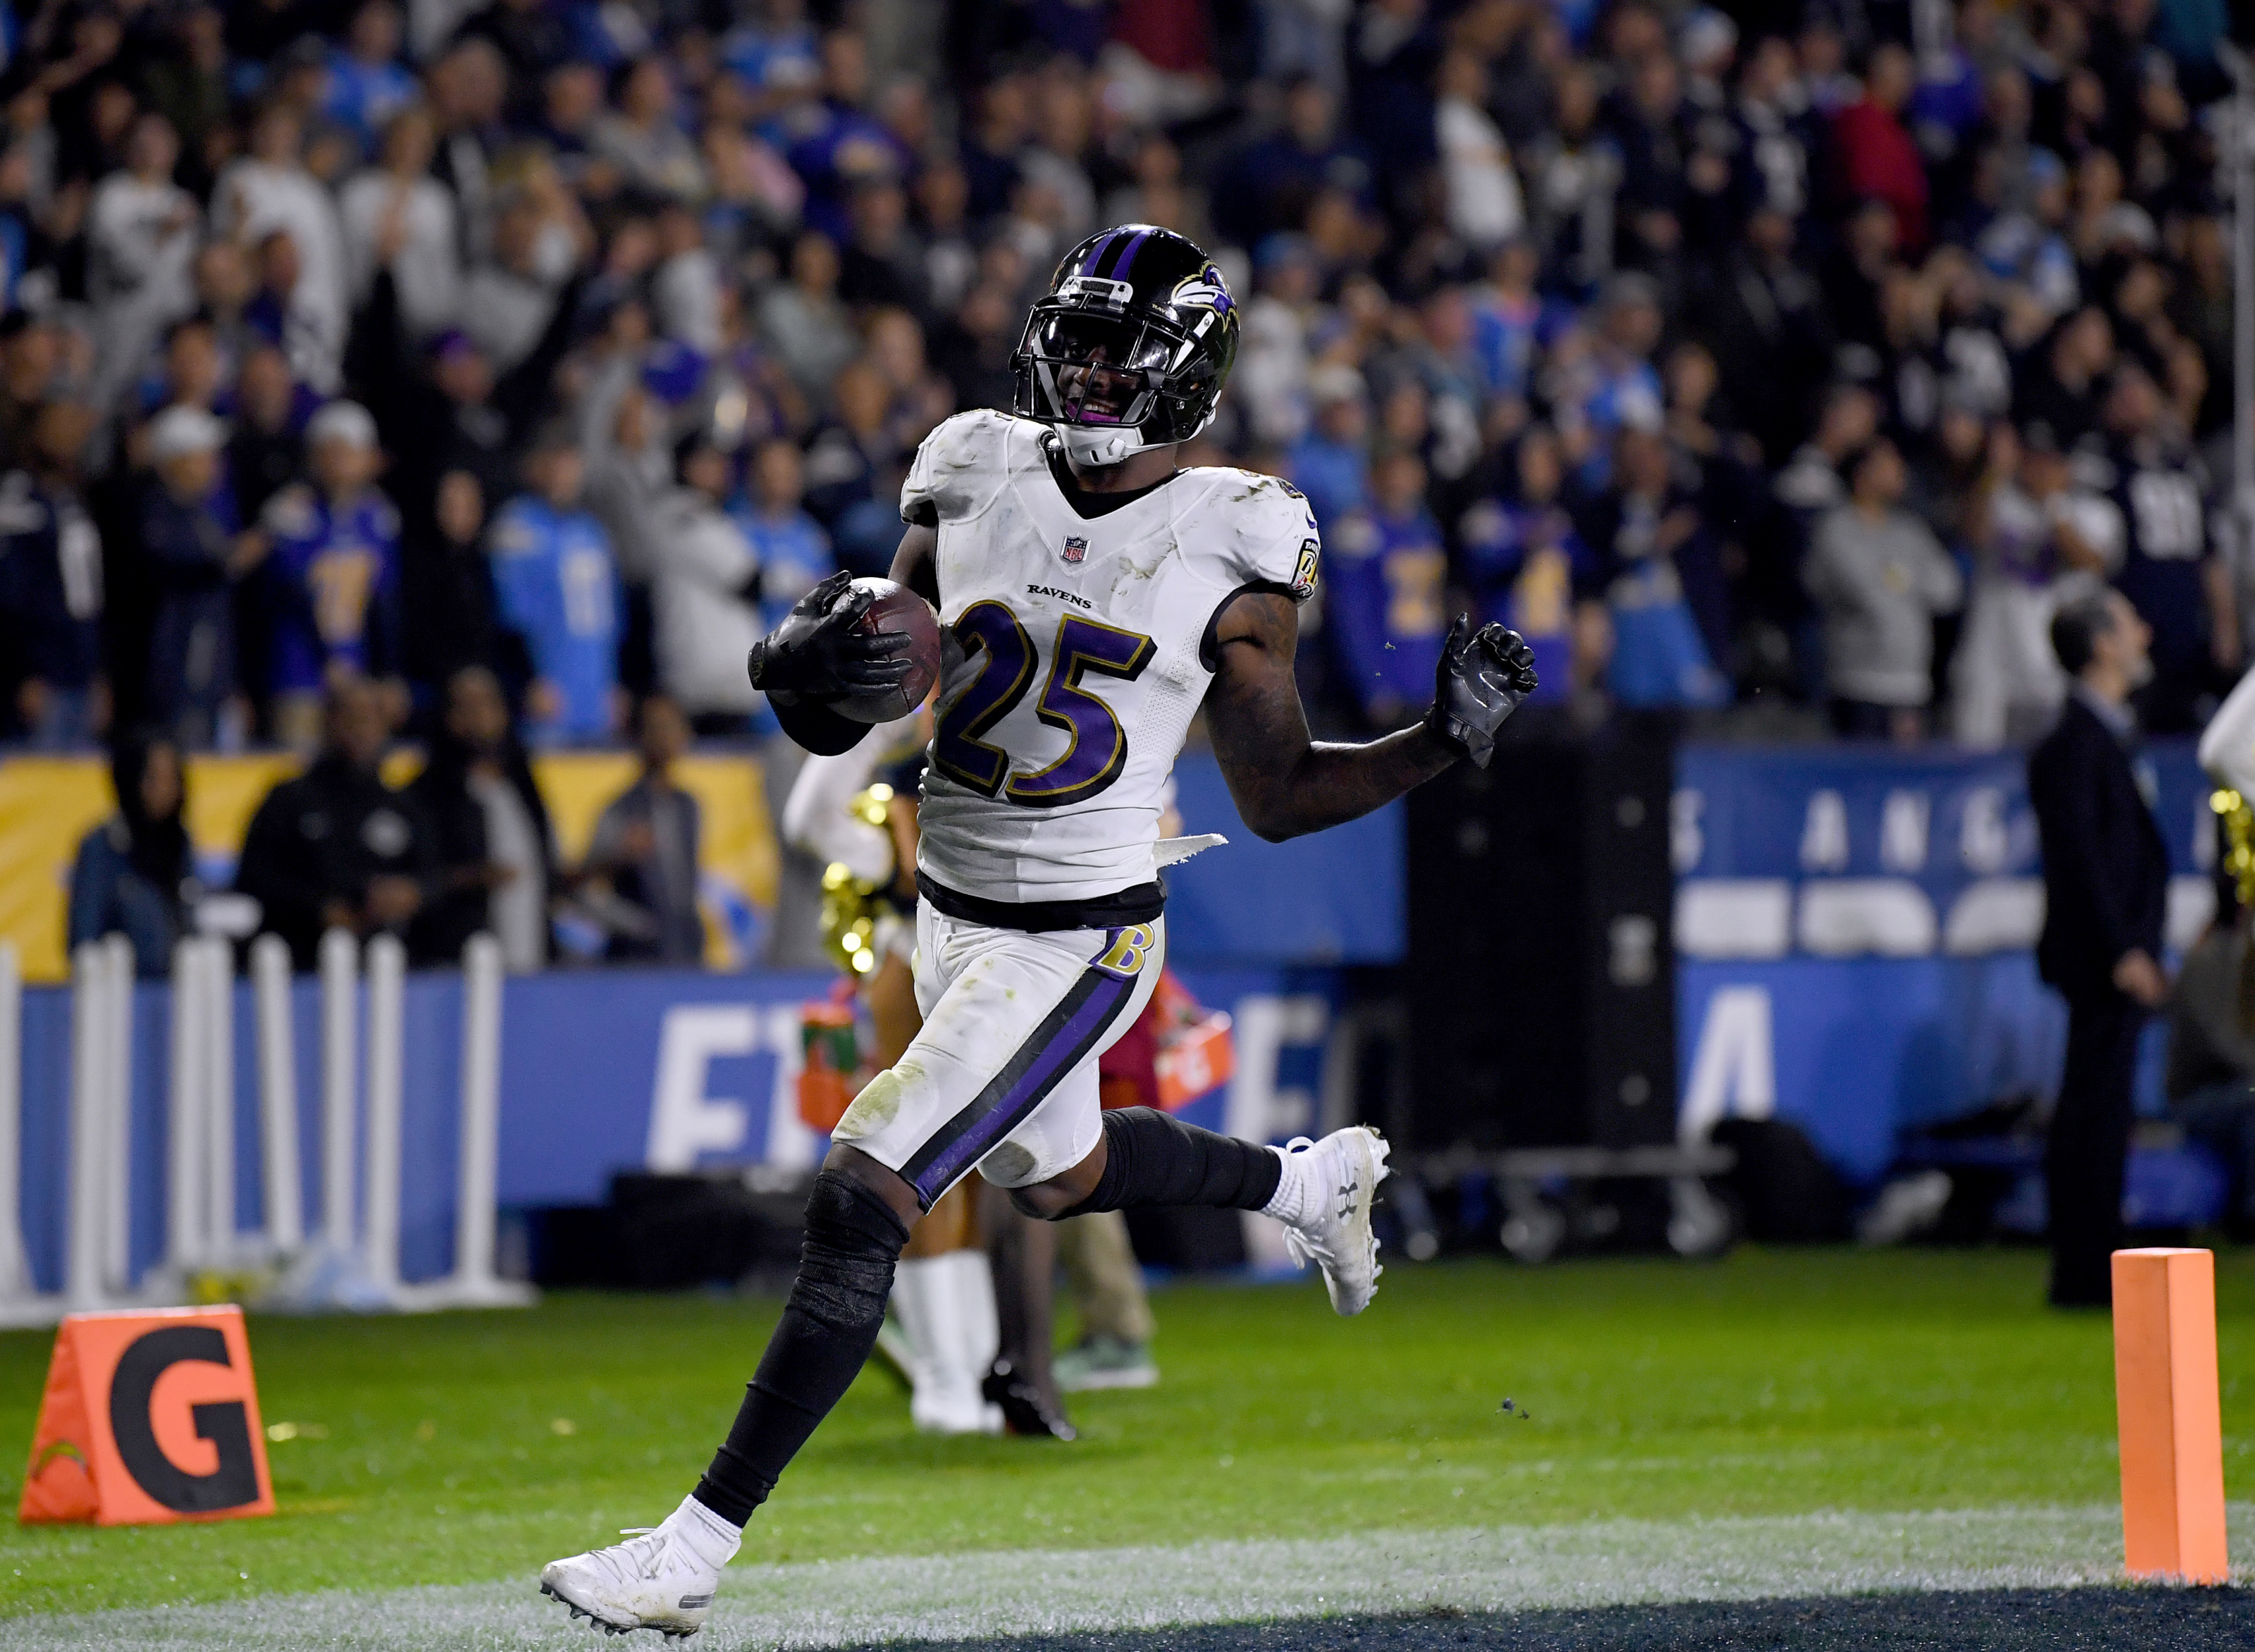 Ravens: Now healthy, Tavon Young faces critical season in 2021